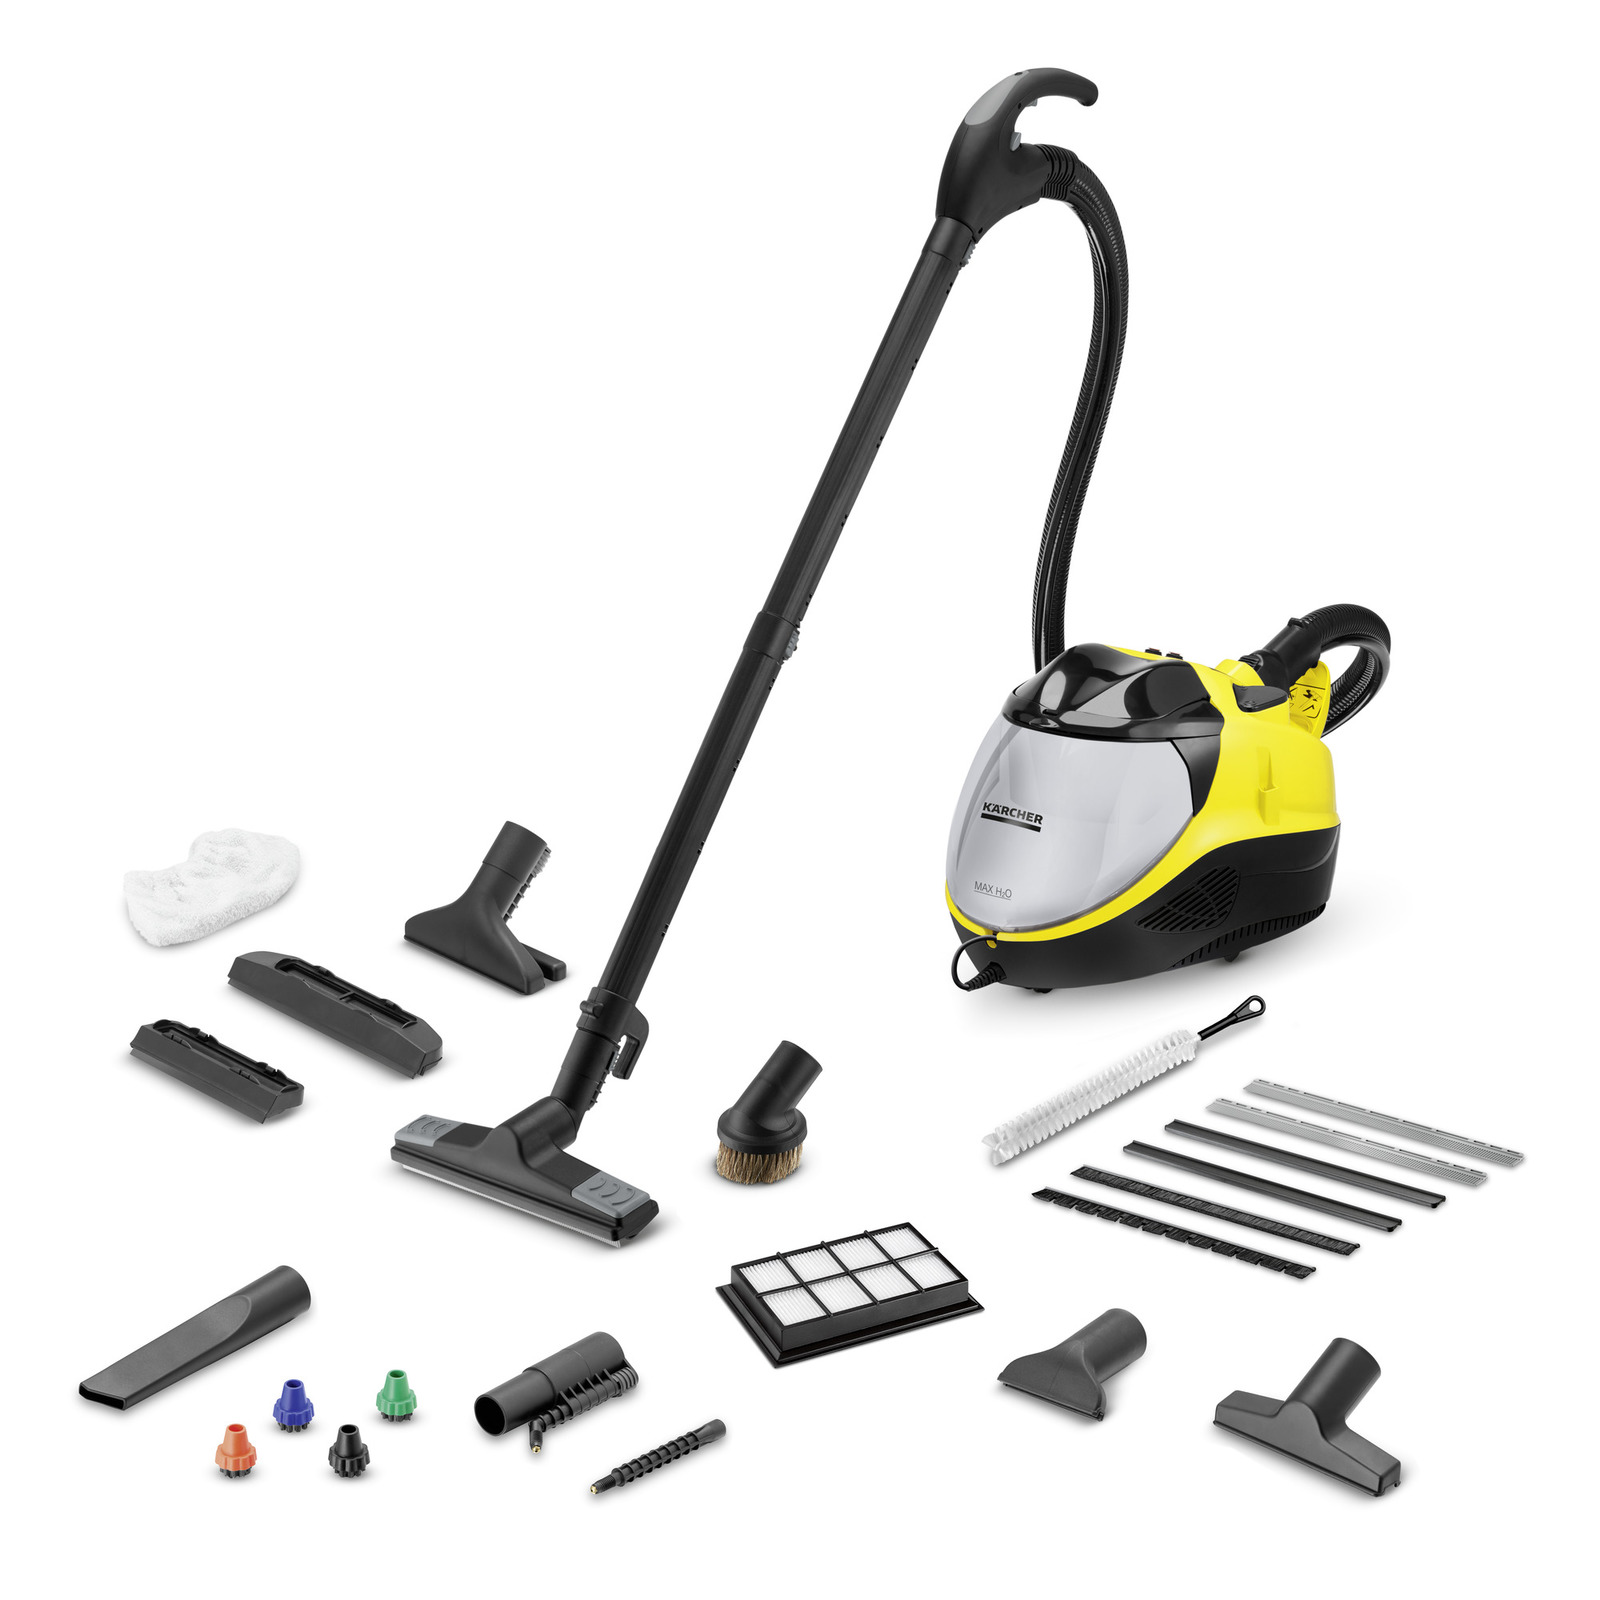 Kärcher Steam vacuum cleaner SV 7